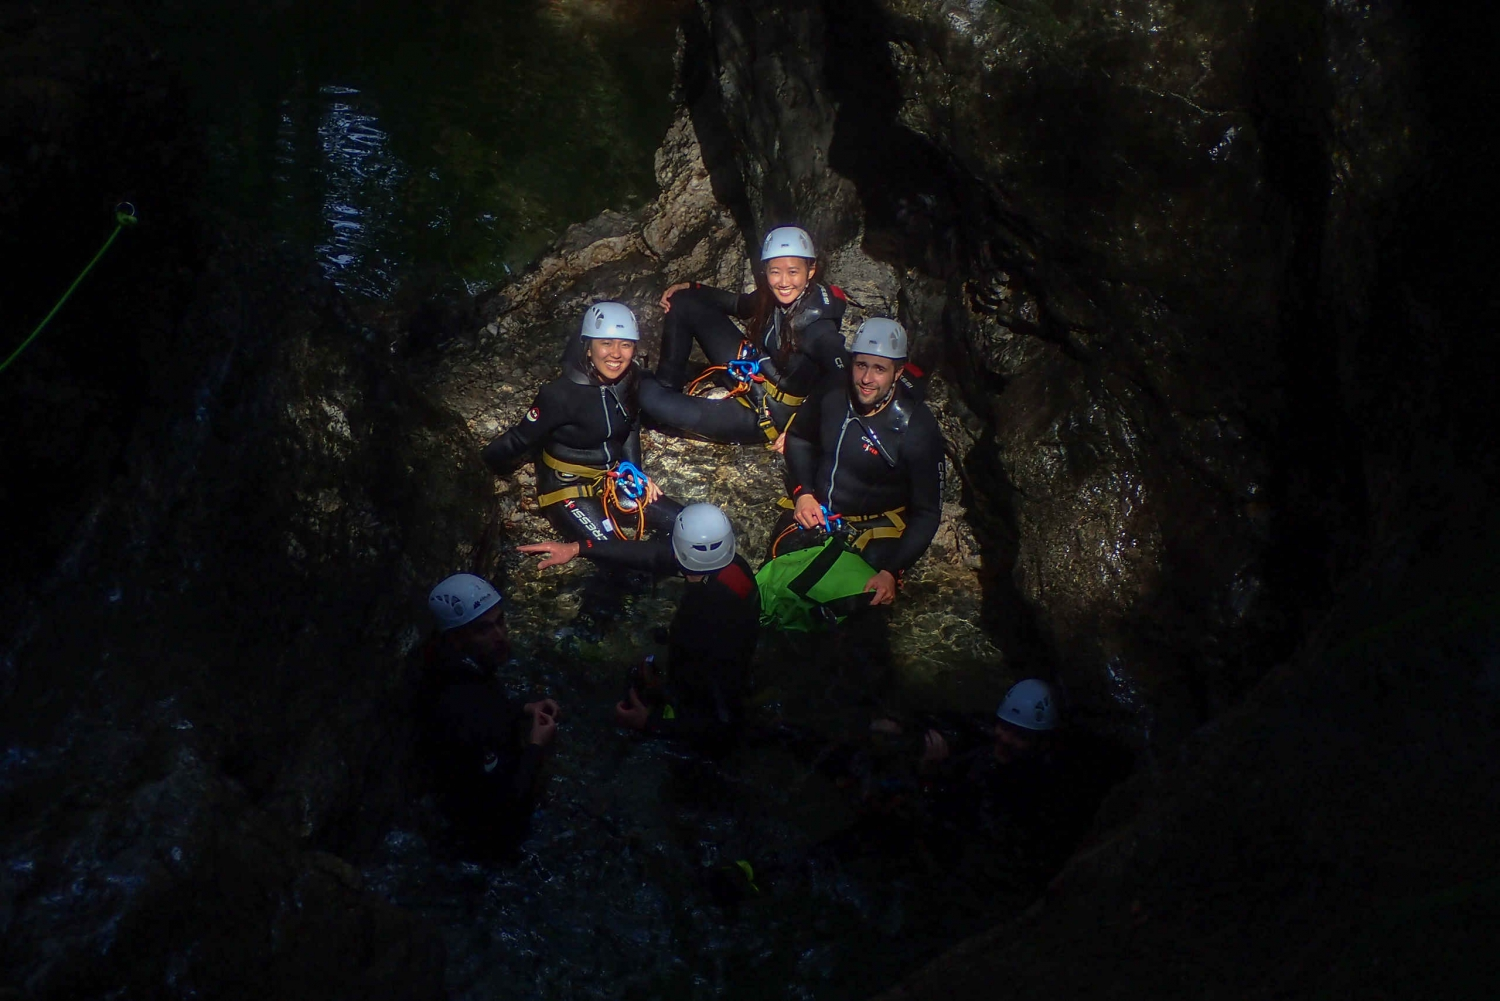 Bled: Night Canyoning Experience